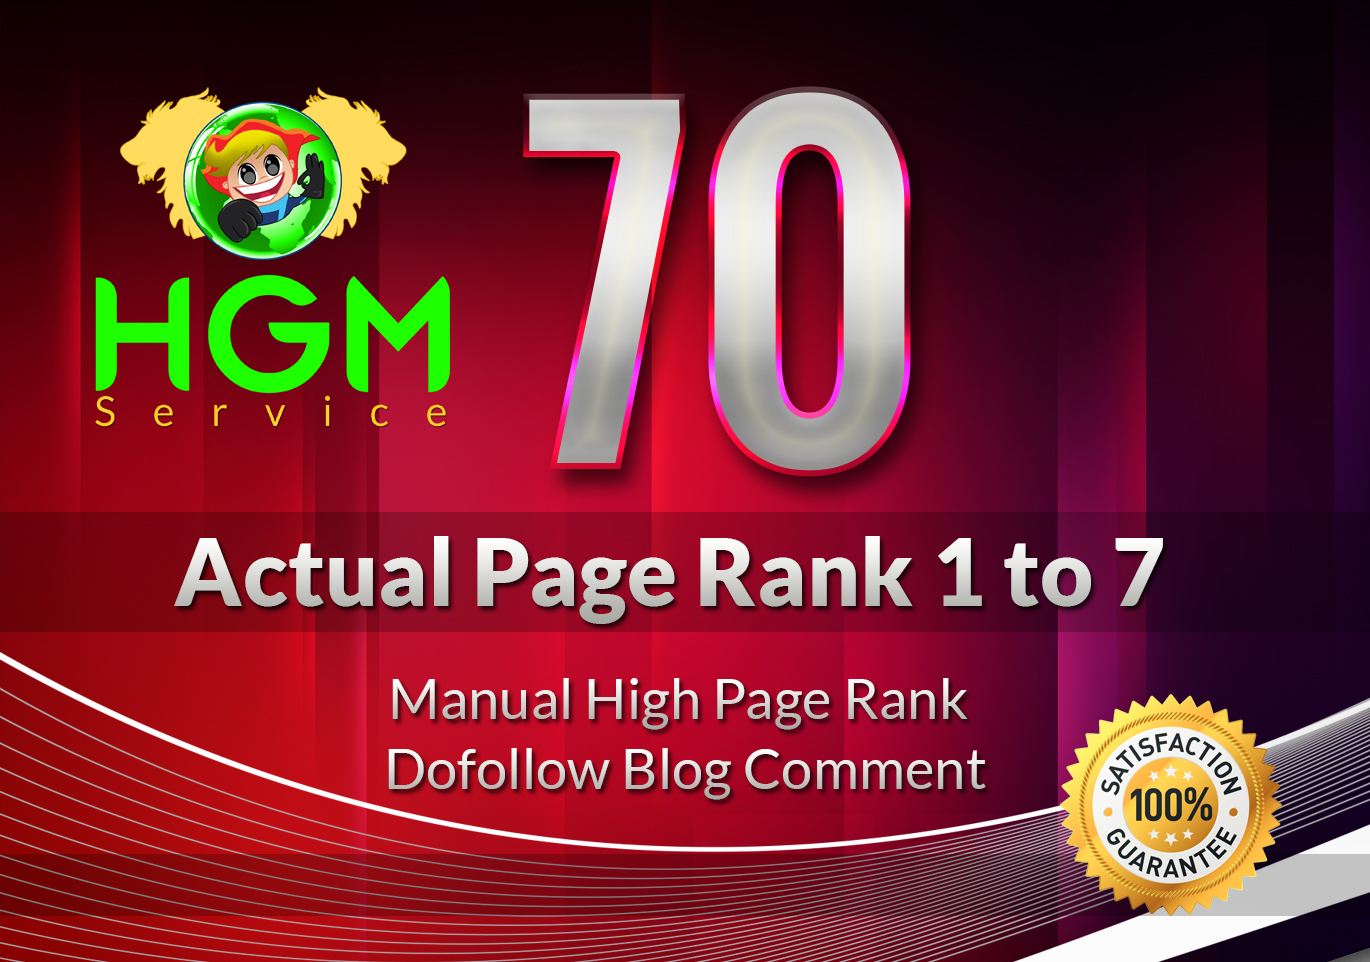 I Will Do 70 Manual DoFollow Blog Comment On Actual Page Rank 1 Up To 7 for